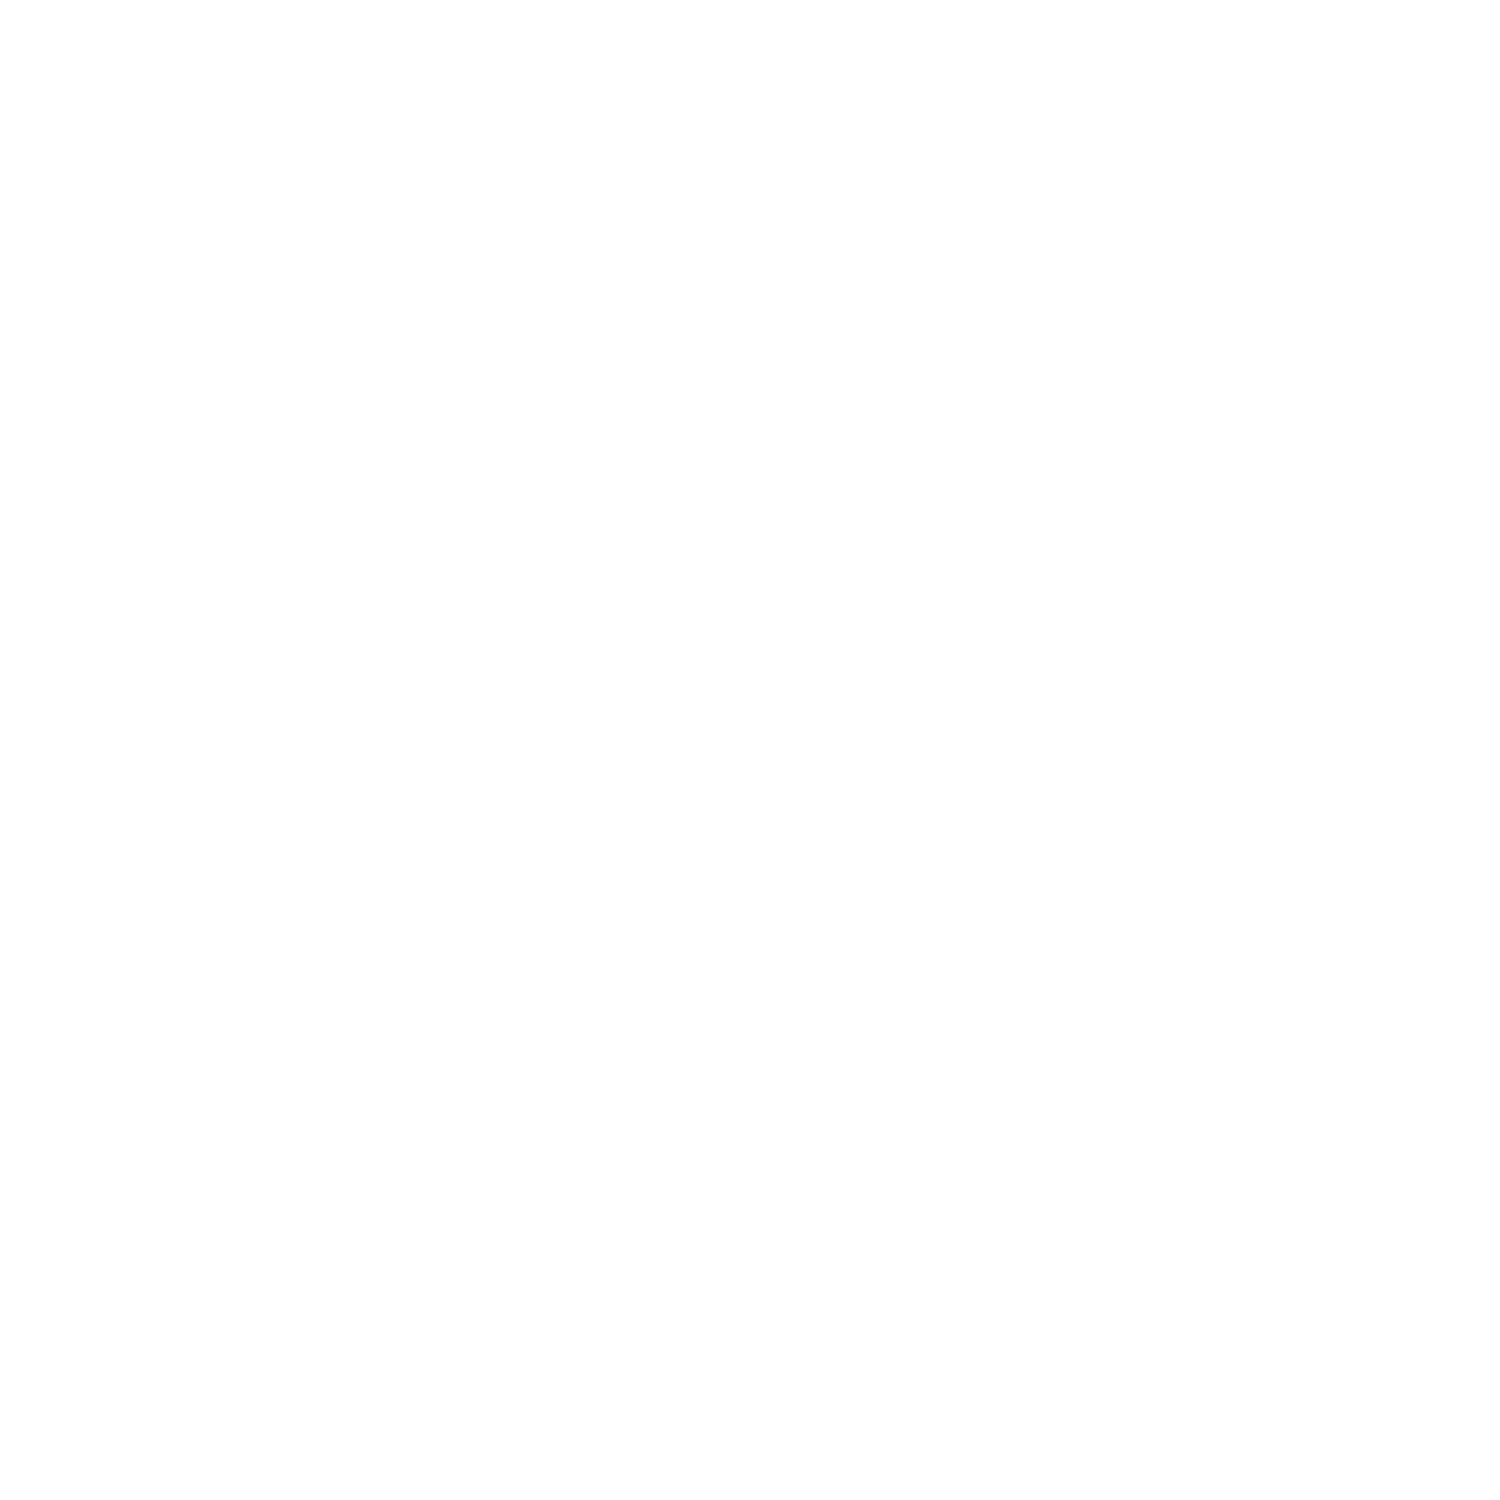 FORTY FIVE WOOD